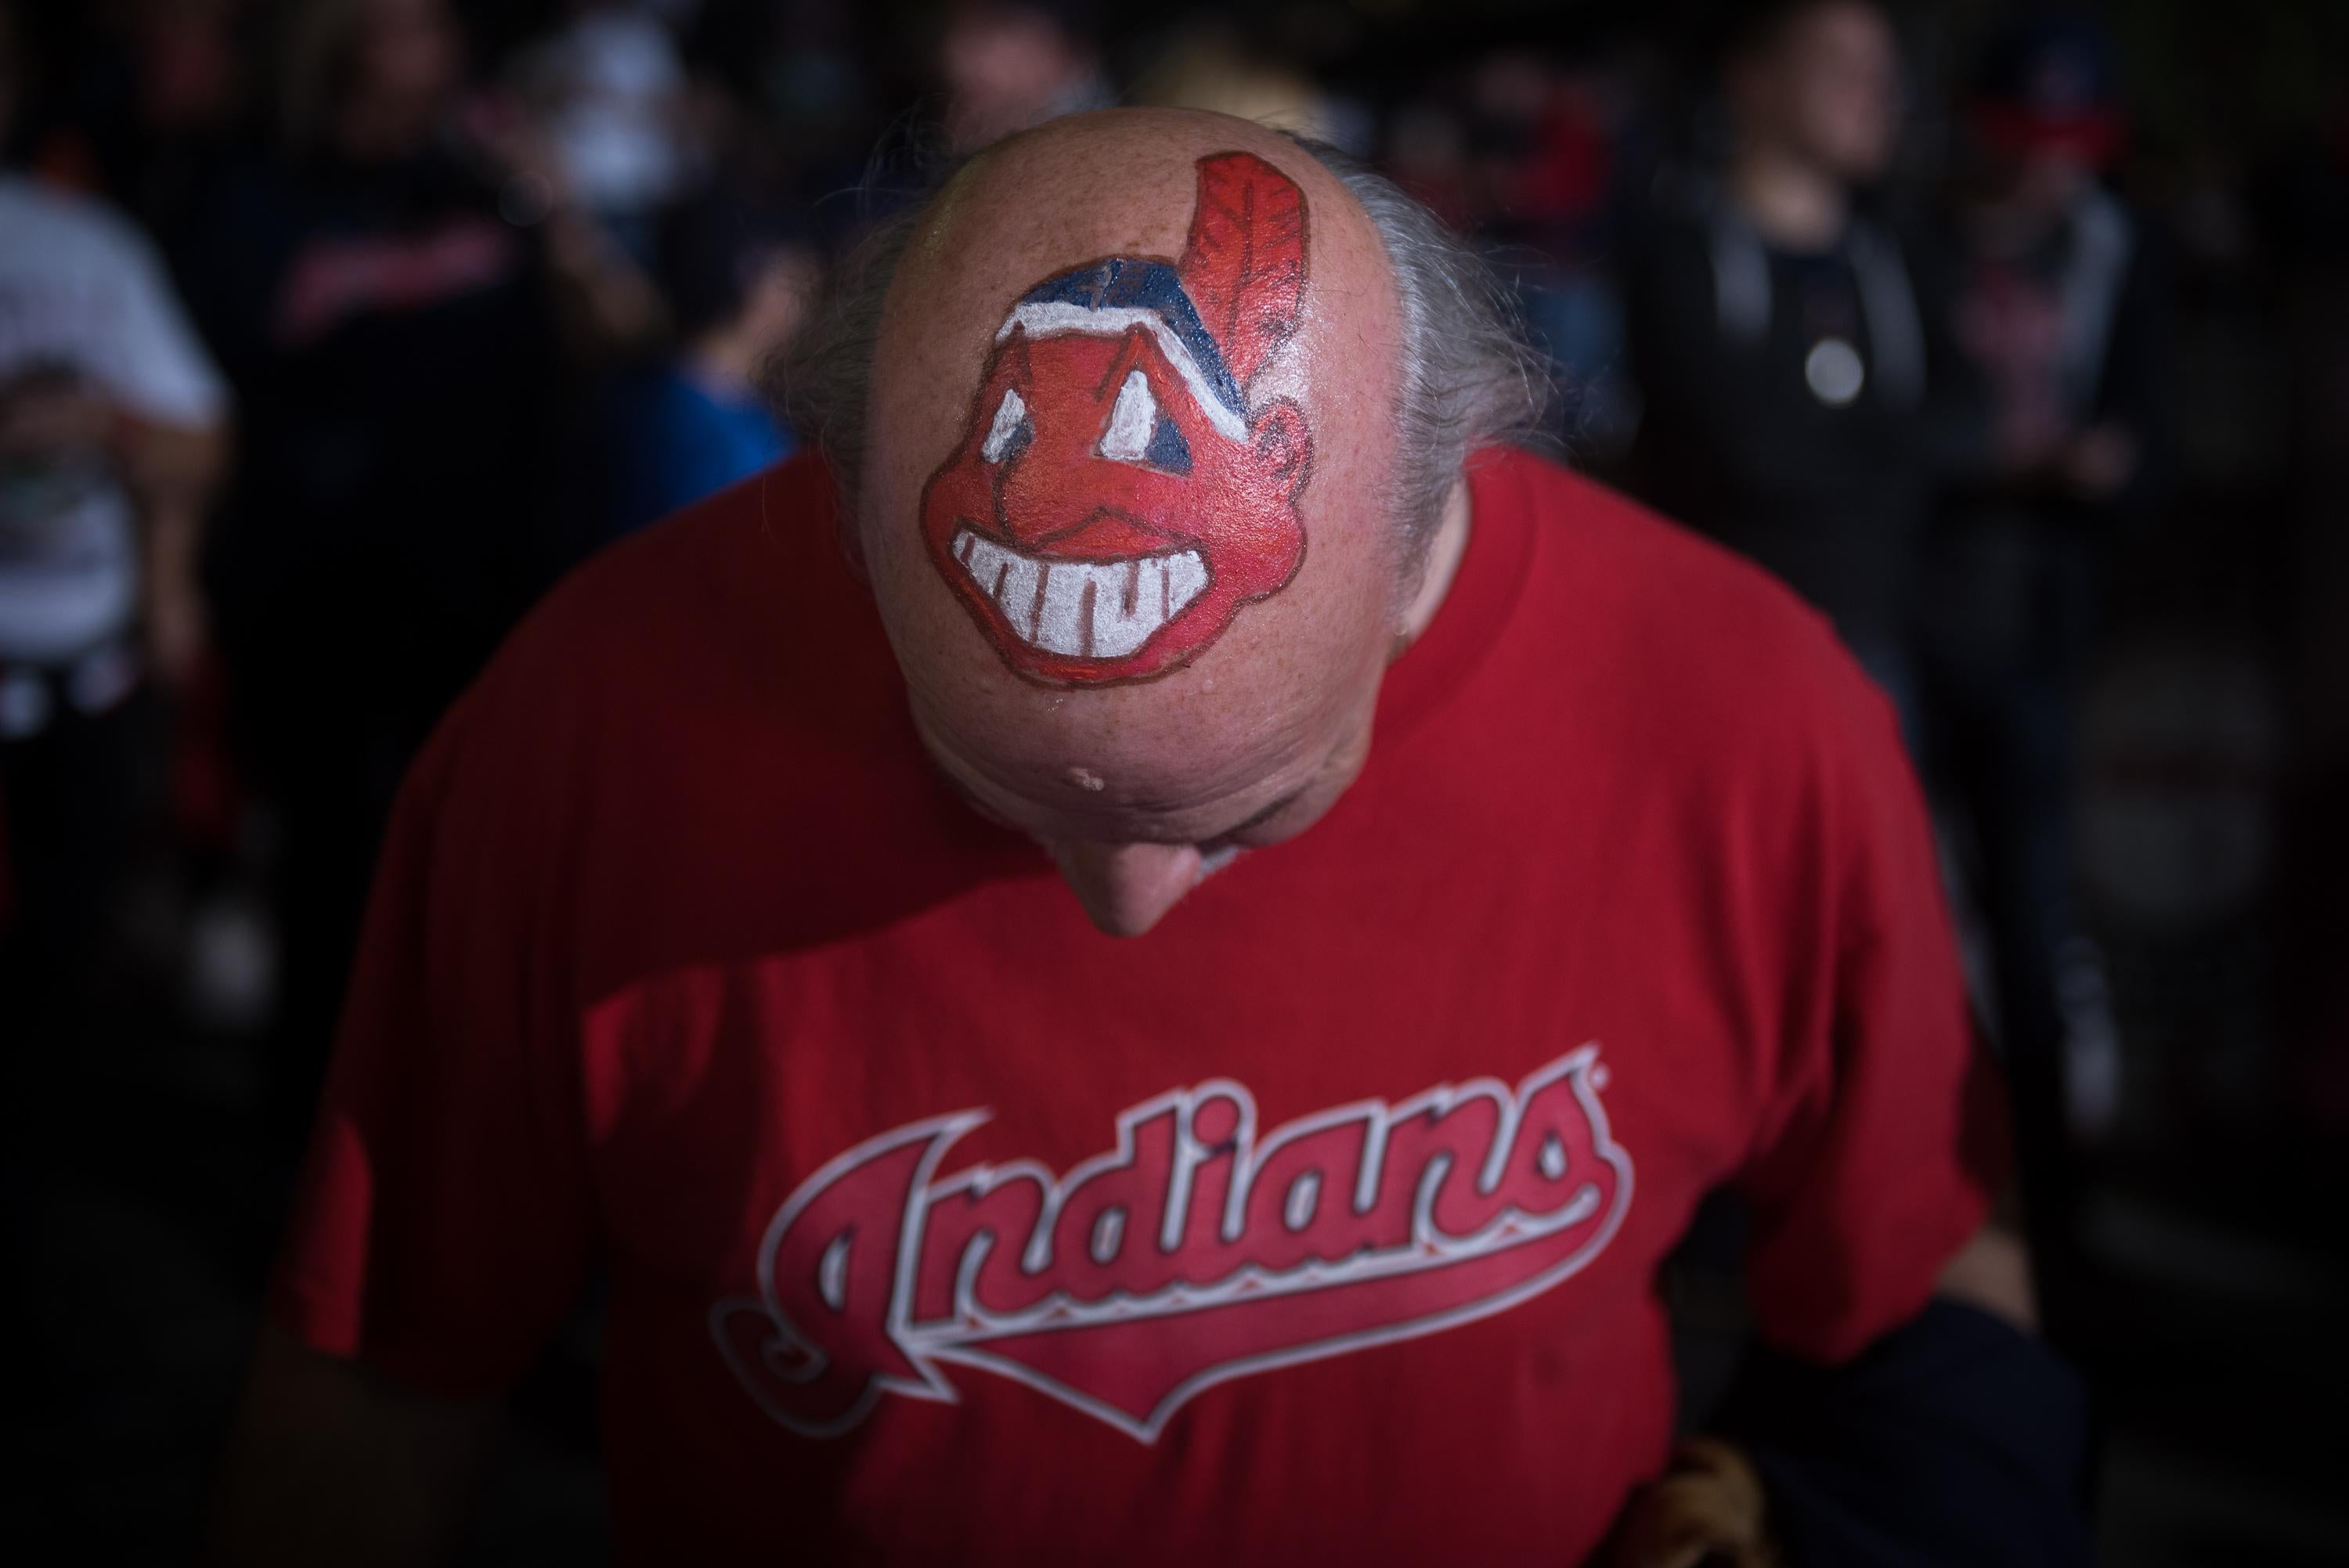 A fan shows off his Cleveland Indians mascot-painted head prior to game 6 of the World Series against the Chicago Cubs on November 1, 2016 in Cleveland, Ohio.